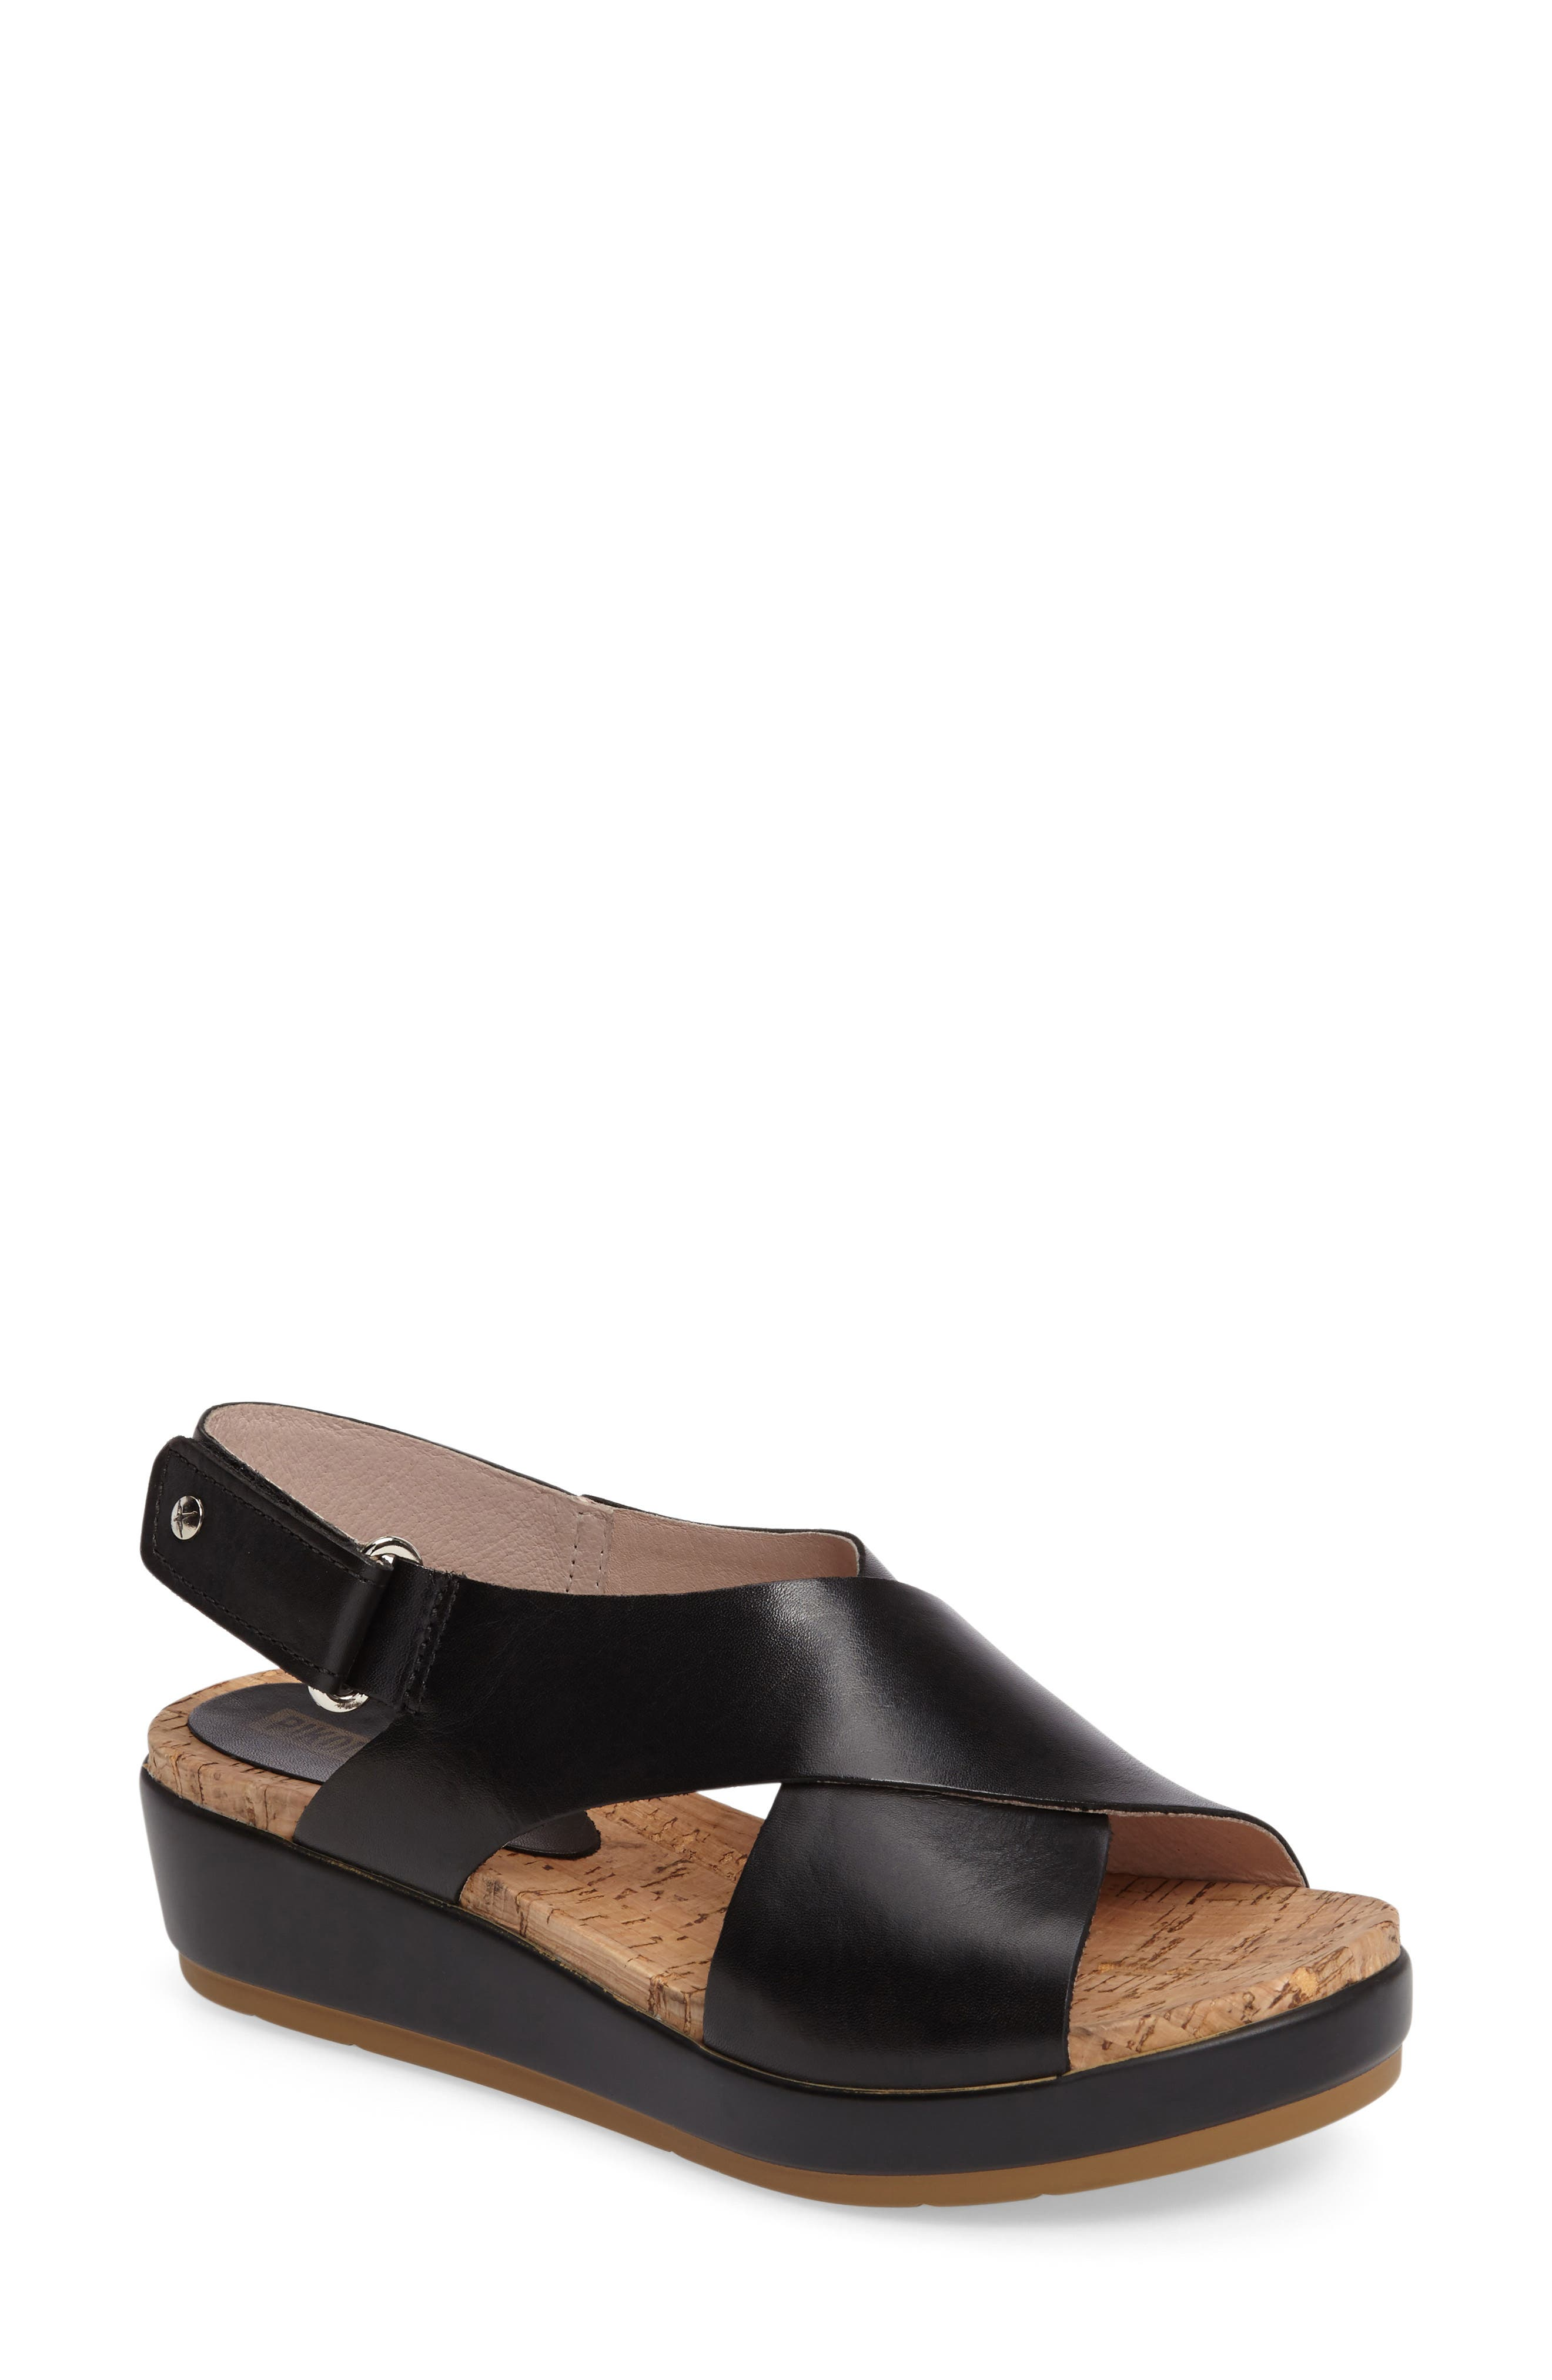 'Mykonos' Platform Sandal,                             Main thumbnail 1, color,                             BLACK/ BLACK LEATHER